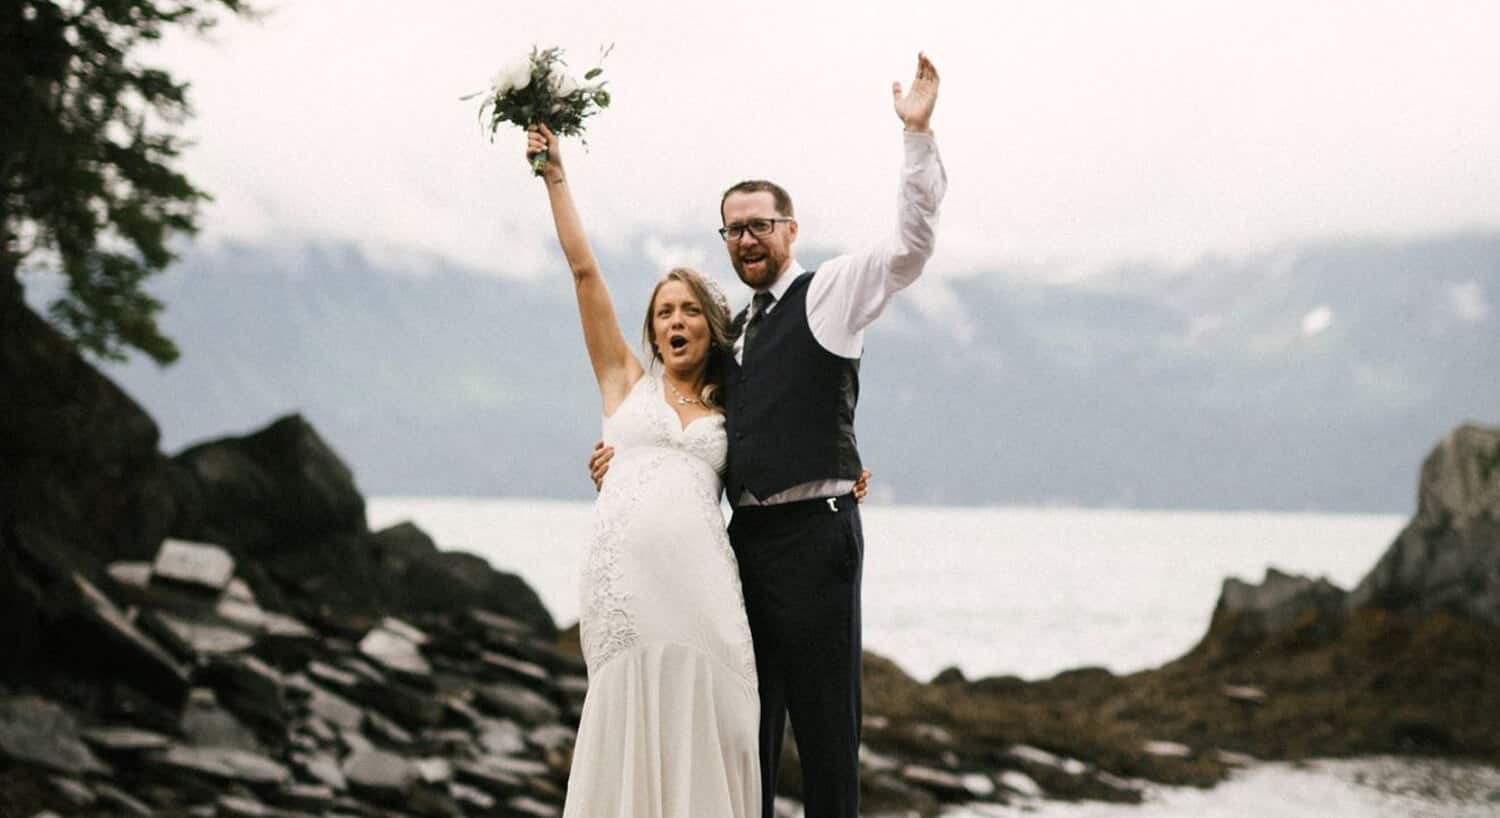 bride holding bouquet over head and groom waving hand standing on rocks giving holler with snow-capped mountains in background